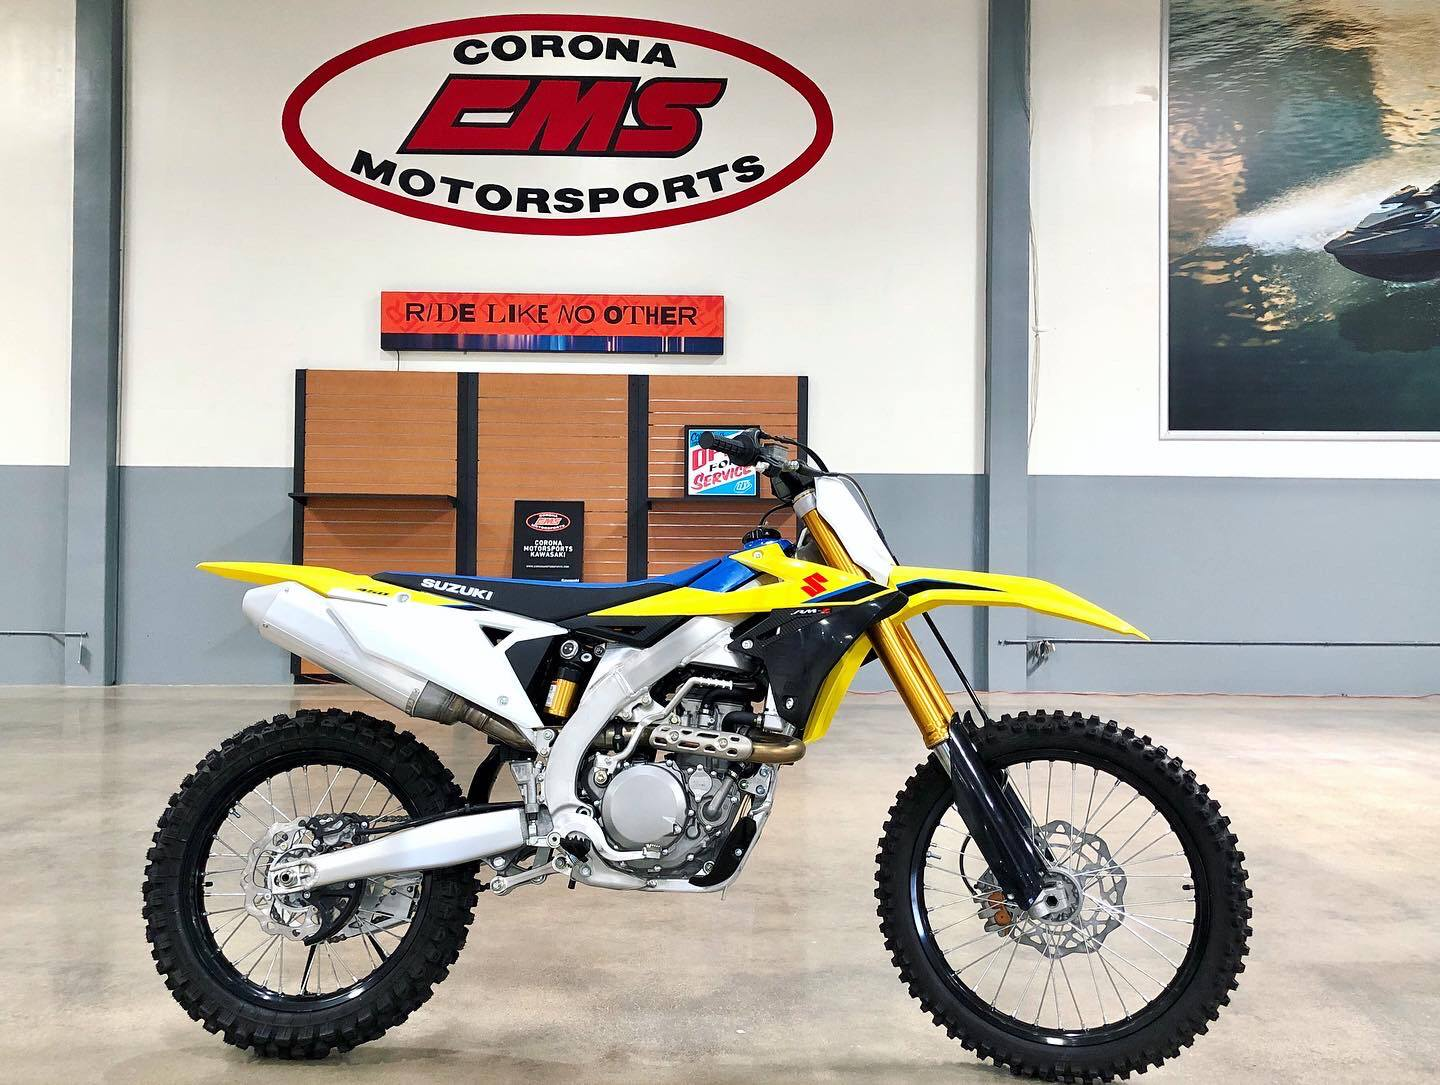 2020 Suzuki RM-Z450 in Corona, California - Photo 1